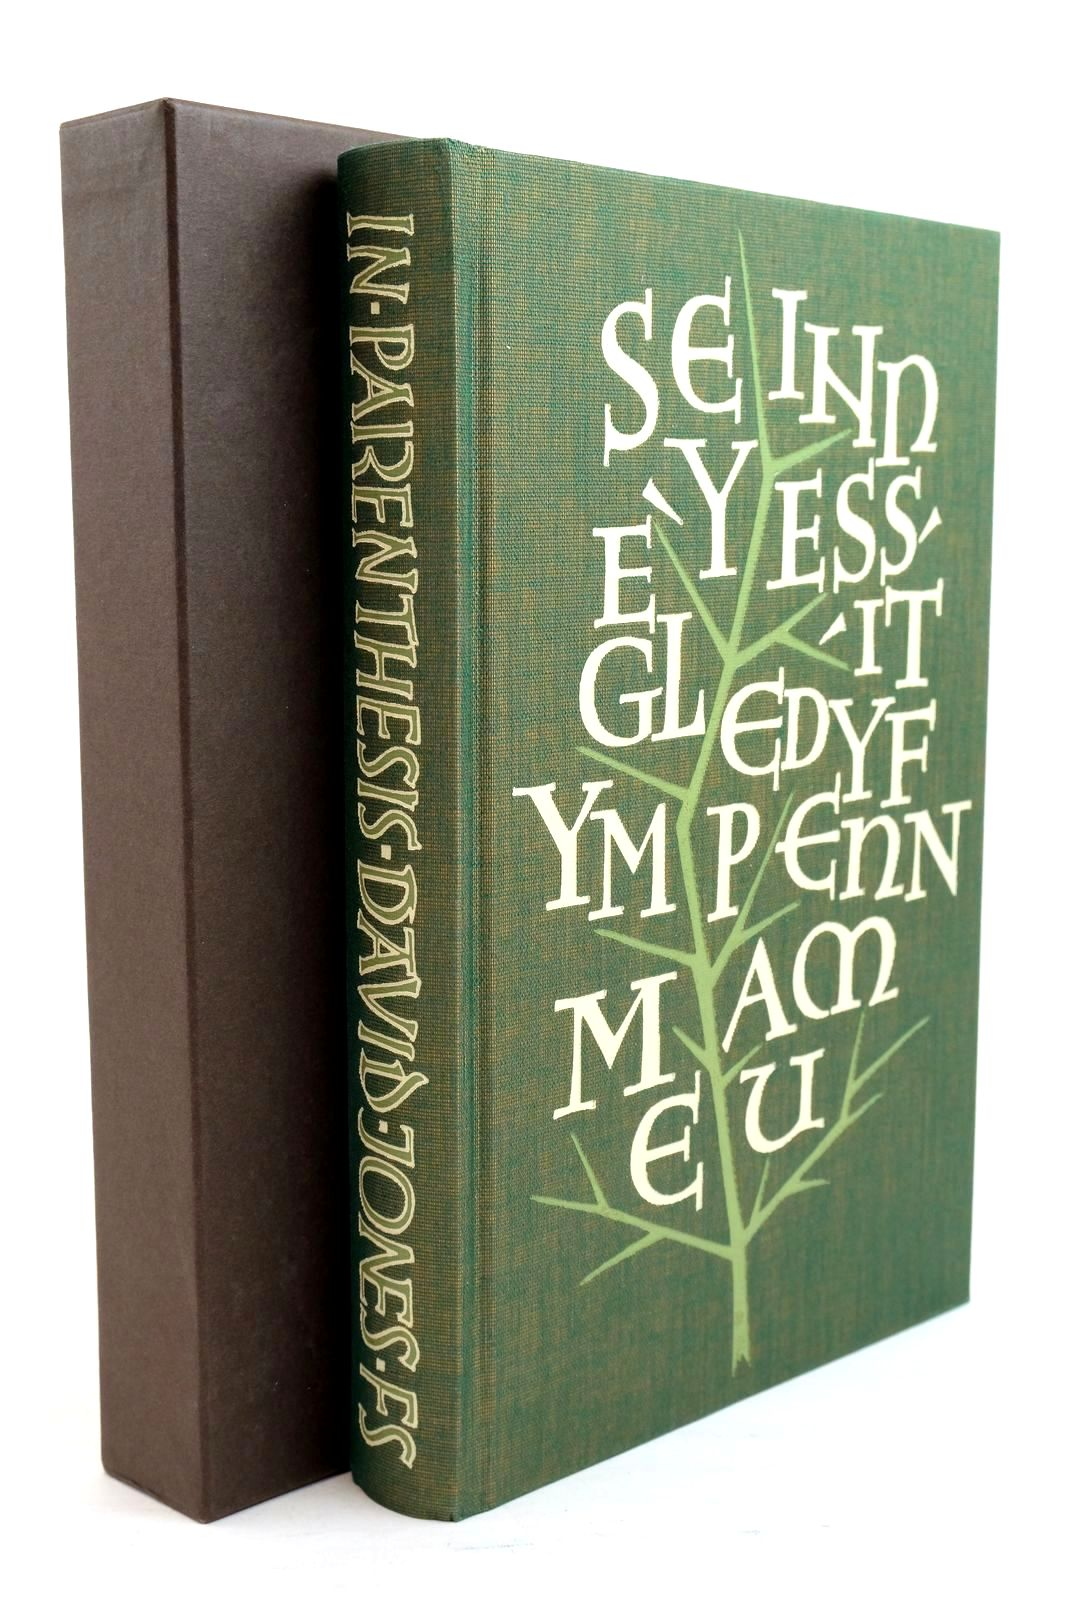 Photo of IN PARENTHESIS written by Jones, David Eliot, T.S. Bloom, Harold illustrated by Clayton, Ewan published by Folio Society (STOCK CODE: 1321065)  for sale by Stella & Rose's Books